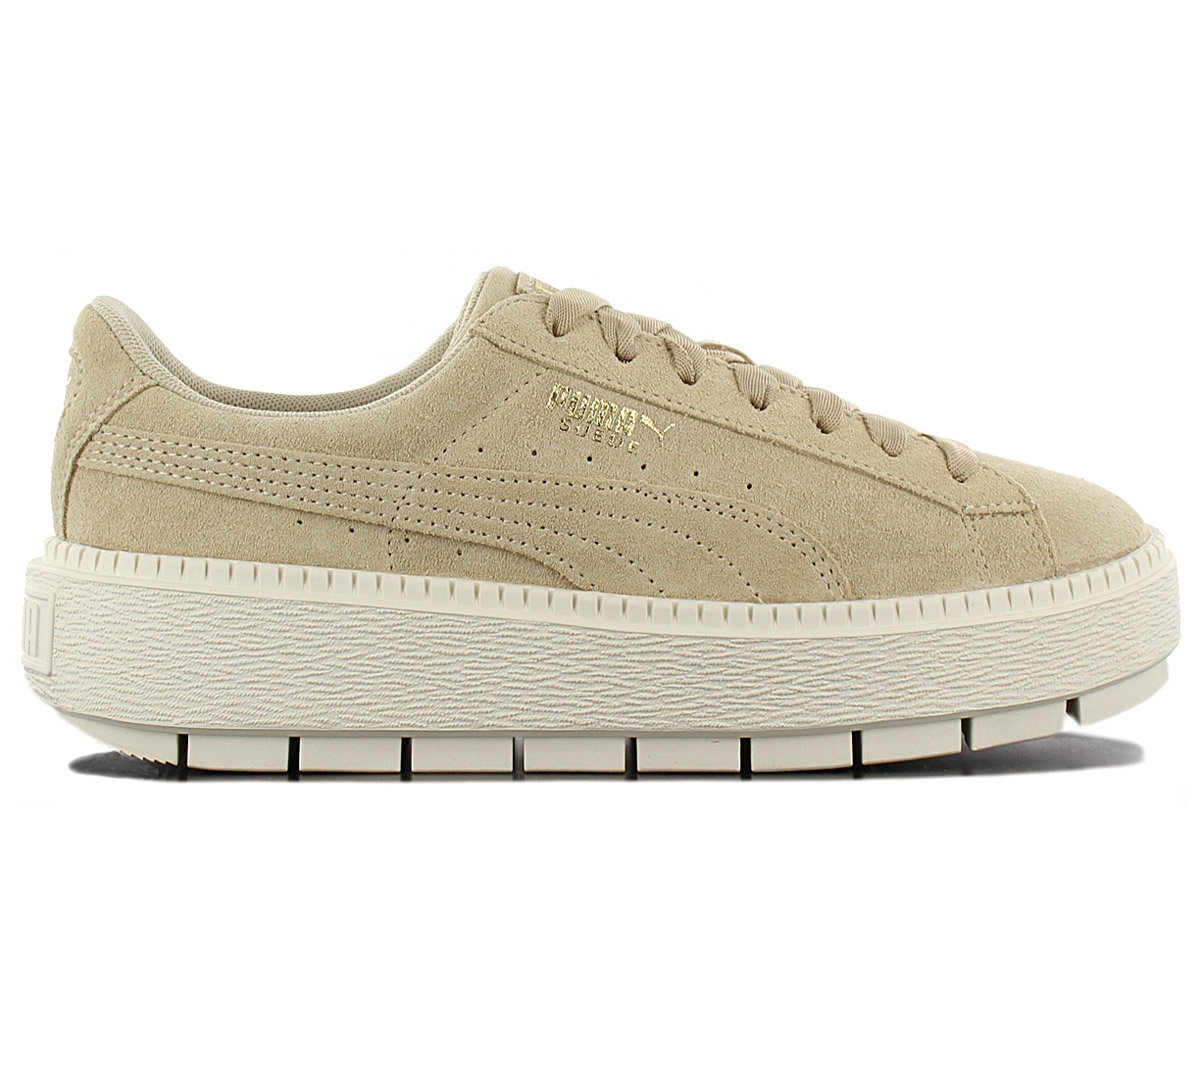 new product c41bf f1720 Puma Platform Trace Ladies Sneaker Shoes 365830-02 Leather Beige ...